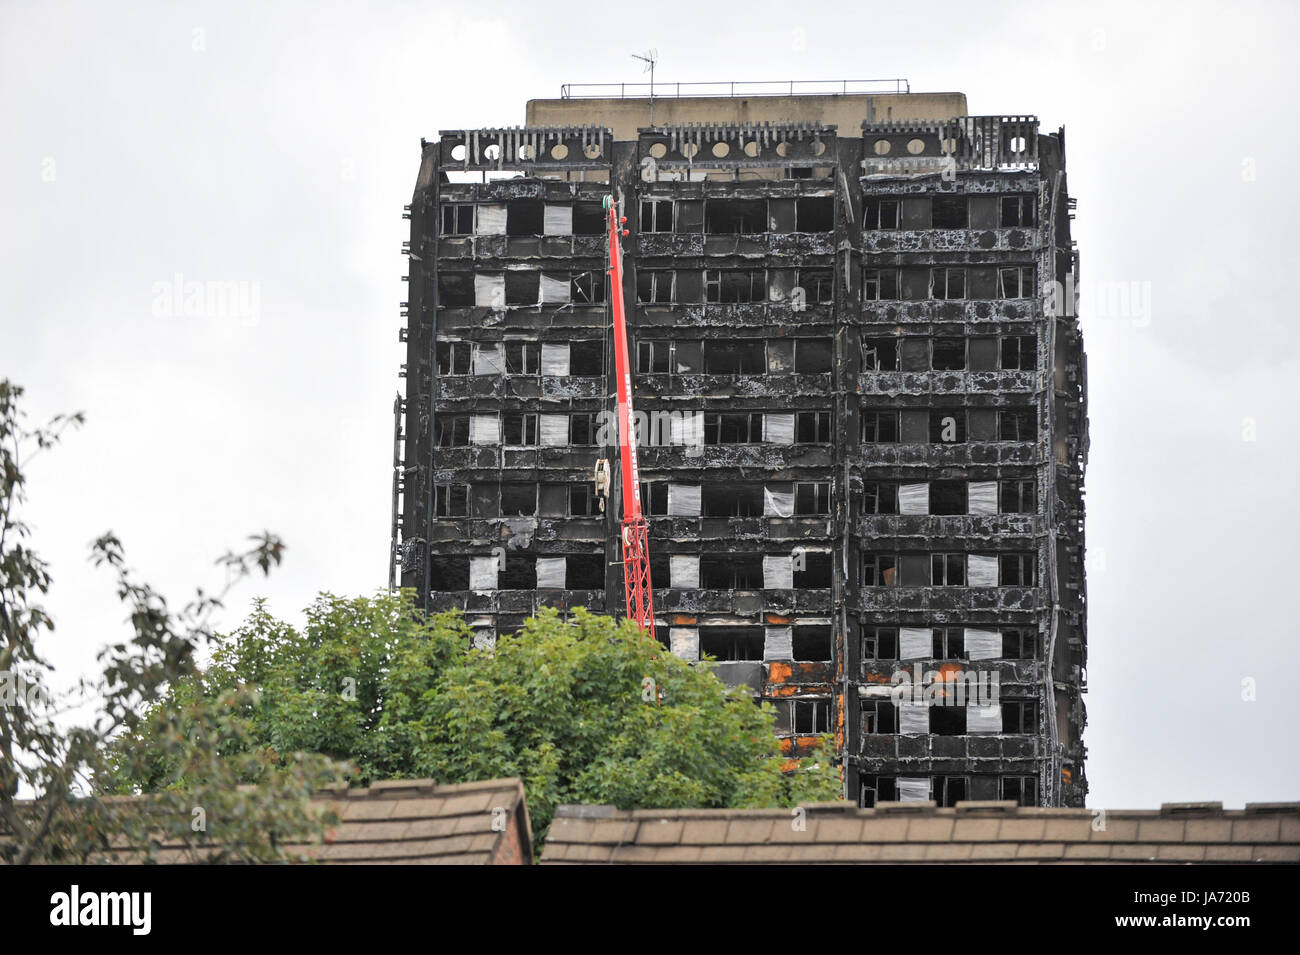 London, UK.  24 August 2017.  The burned out shell of Grenfell Tower stands near the route of the upcoming Notting Stock Photo